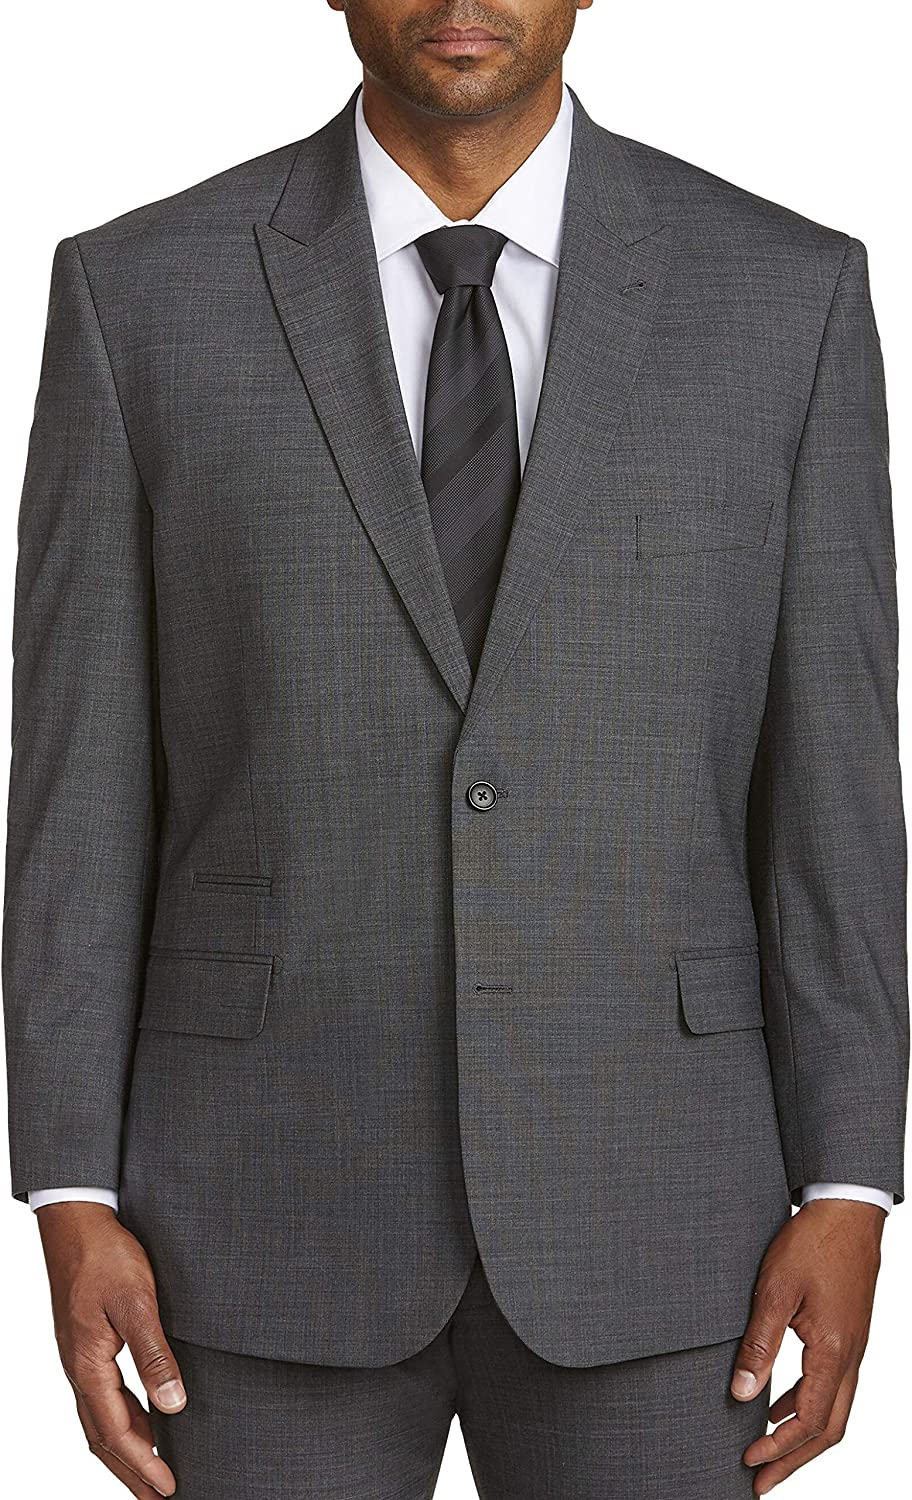 DXL Synrgy Big and Tall Performance Stretch Suit Jacket, Grey